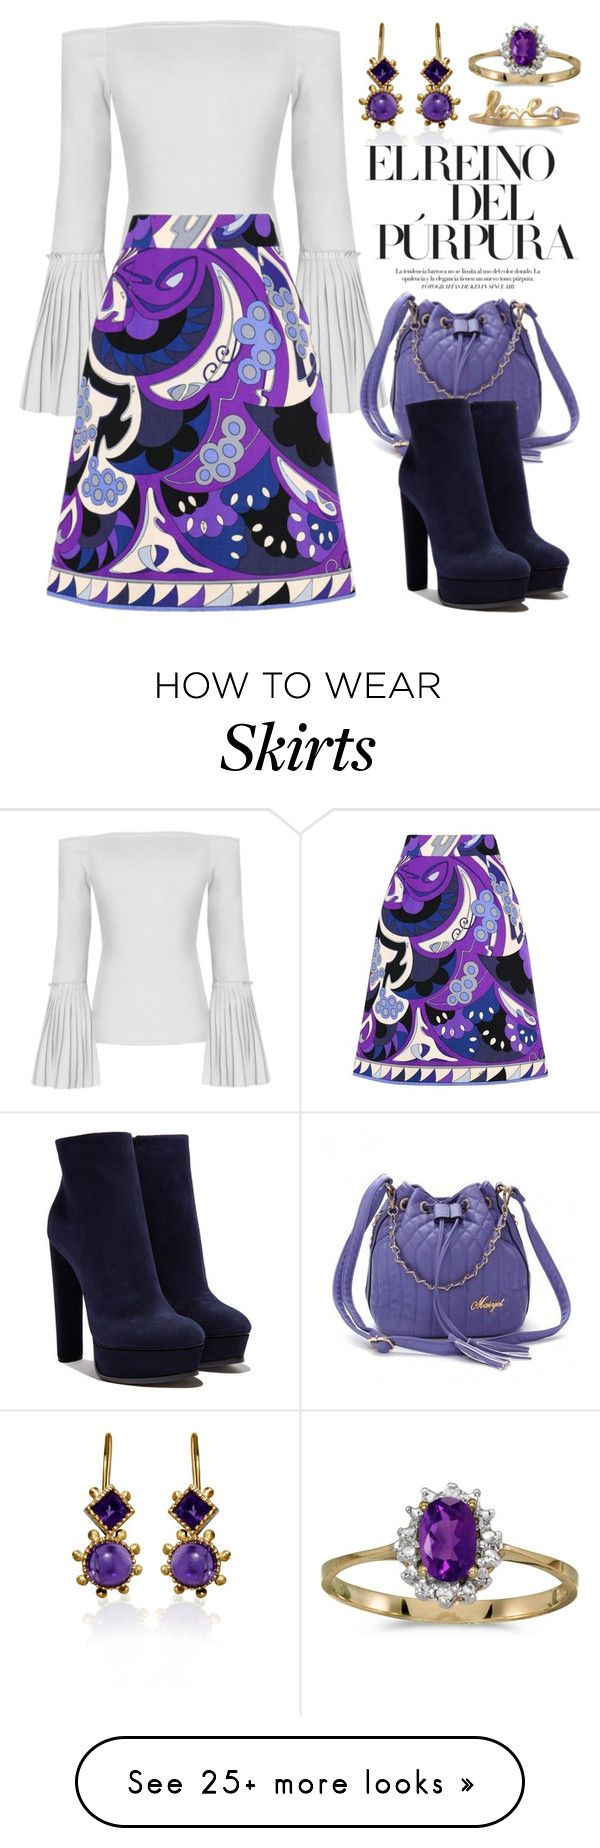 """Your Choice 3140"" by boxthoughts on Polyvore featuring Deci London, Emilio Pucci, Casadei and BillyTheTree"